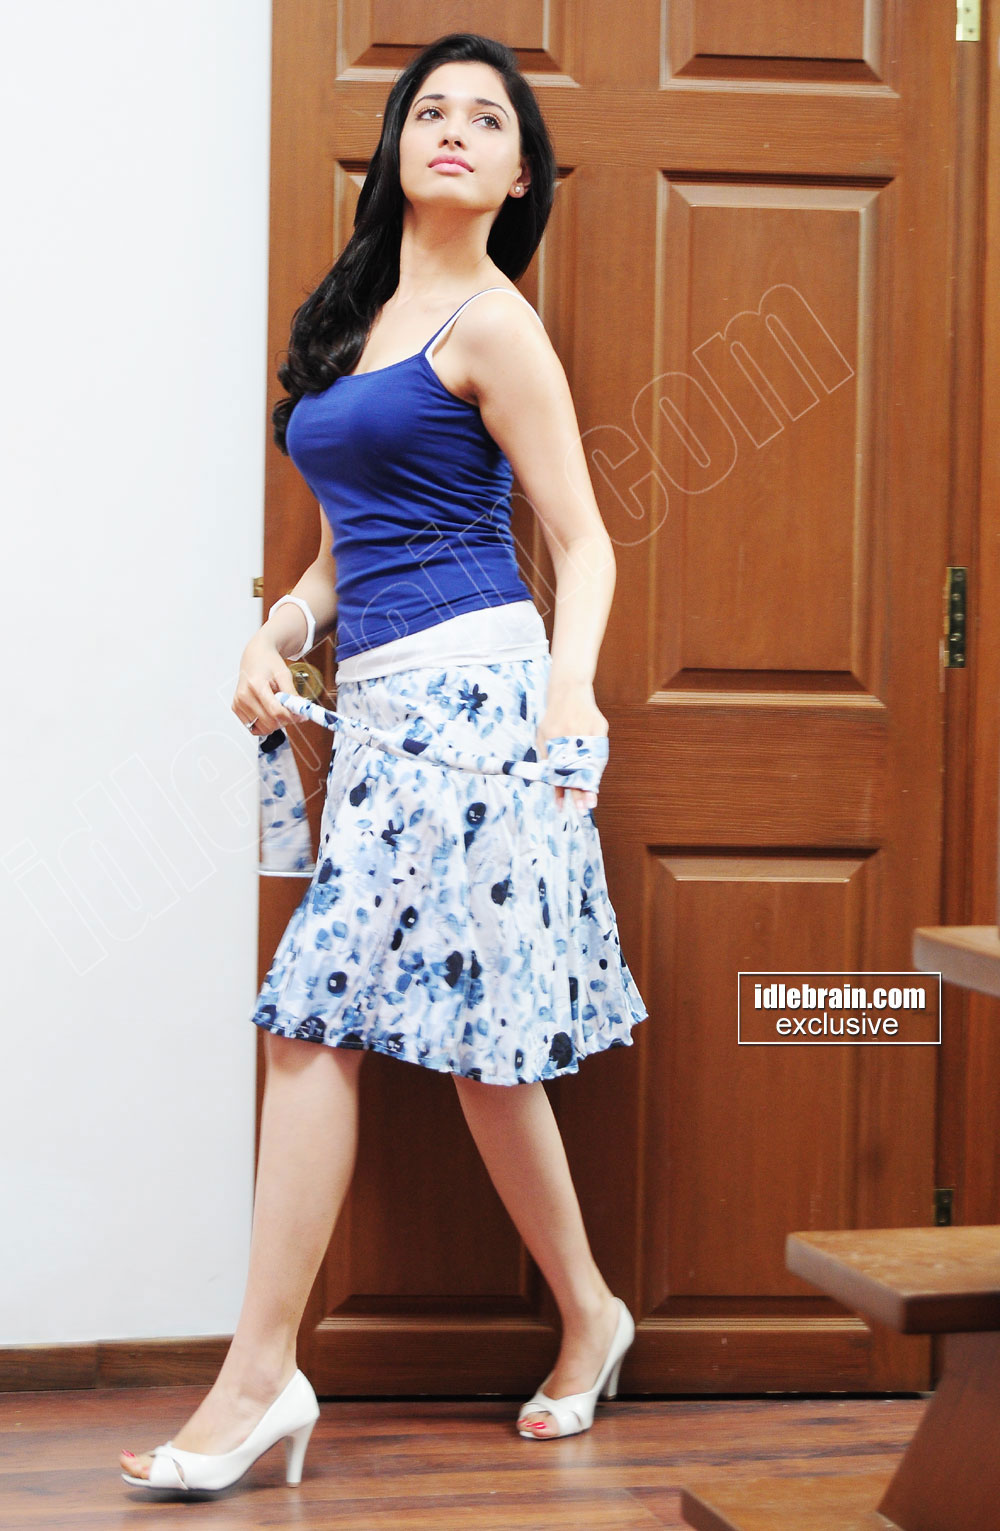 Pose 1 -  Tamanna Bhatia May 2012 photoshoot